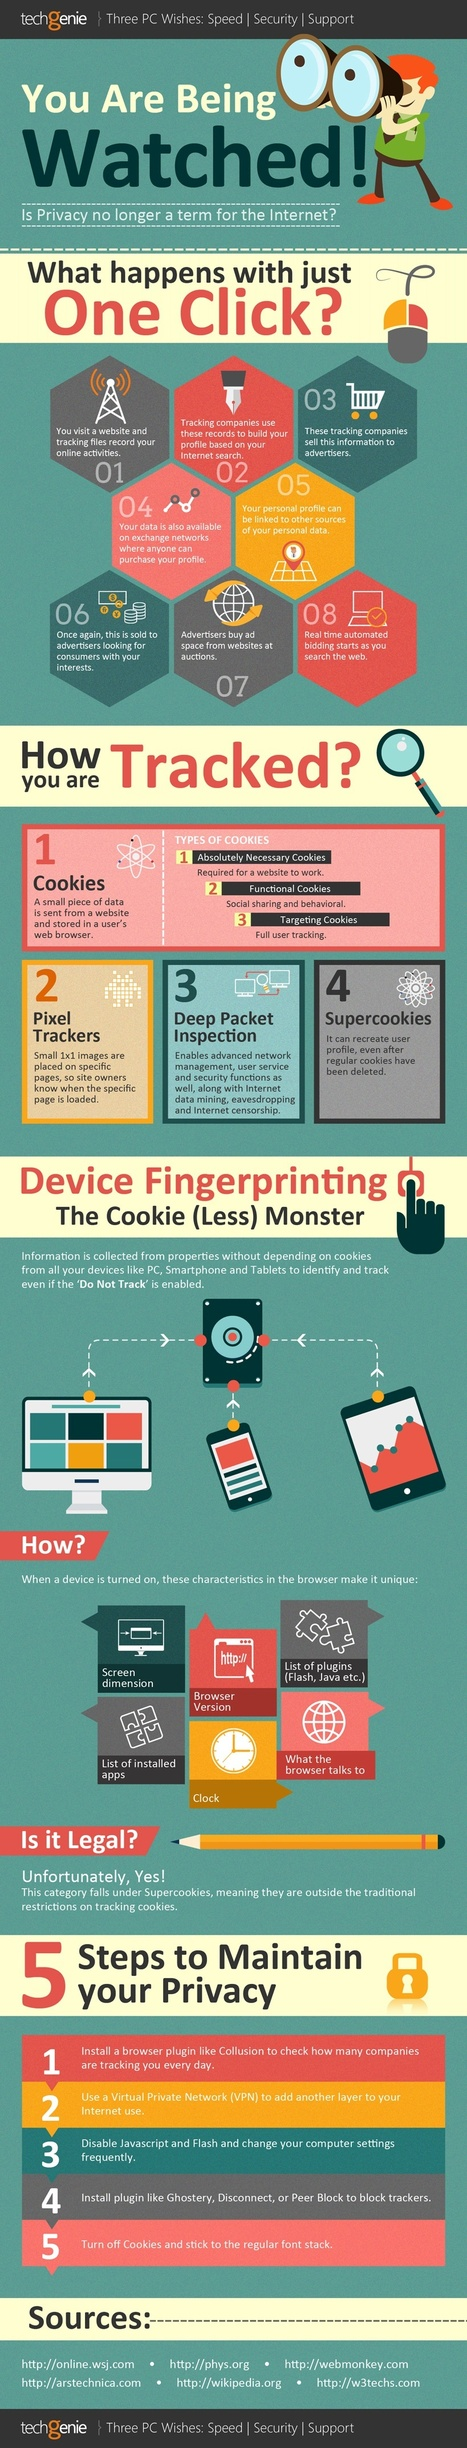 You're Being Watched Online [Infographic] | School Psychology Tech | Scoop.it